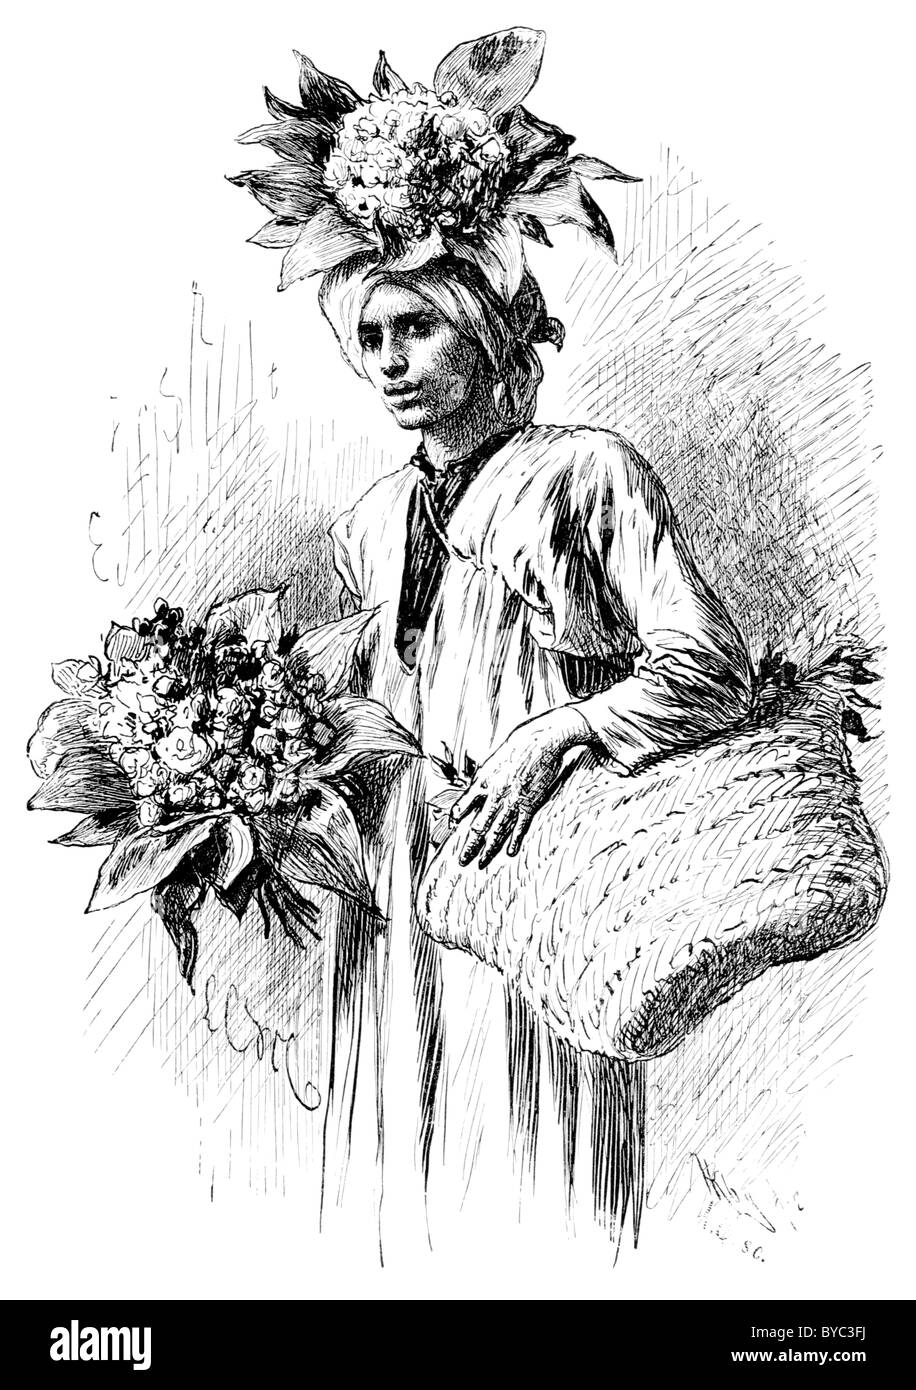 Gardener's Boy, an 1878 engraving of a boy in egypt selling flowers from a basket. - Stock Image